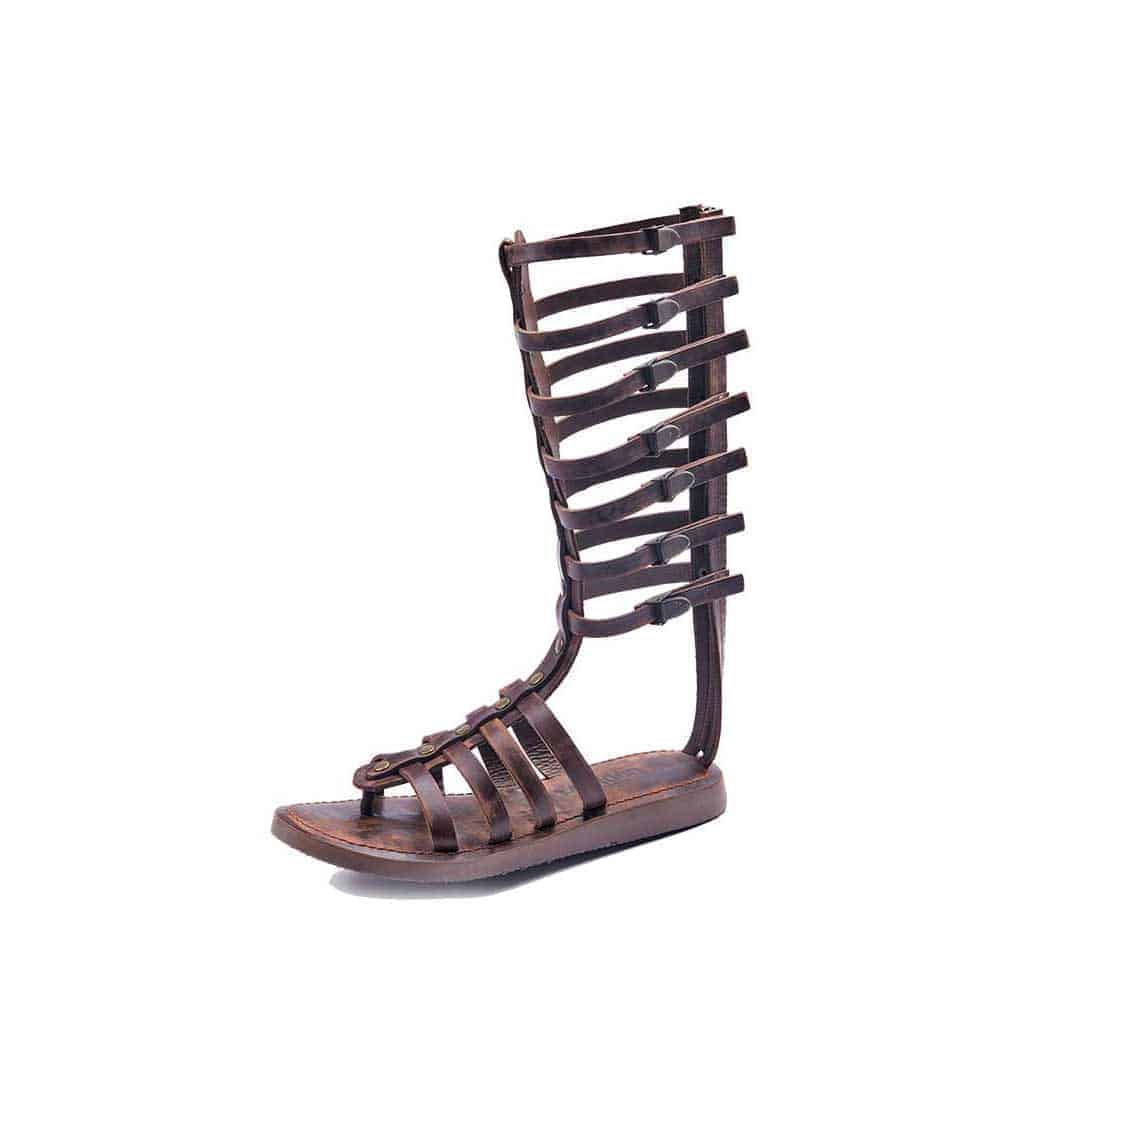 9fee6fa9876e Handmade Leather Gladiator Sandals- 100% Handmade Gladiator Sandals